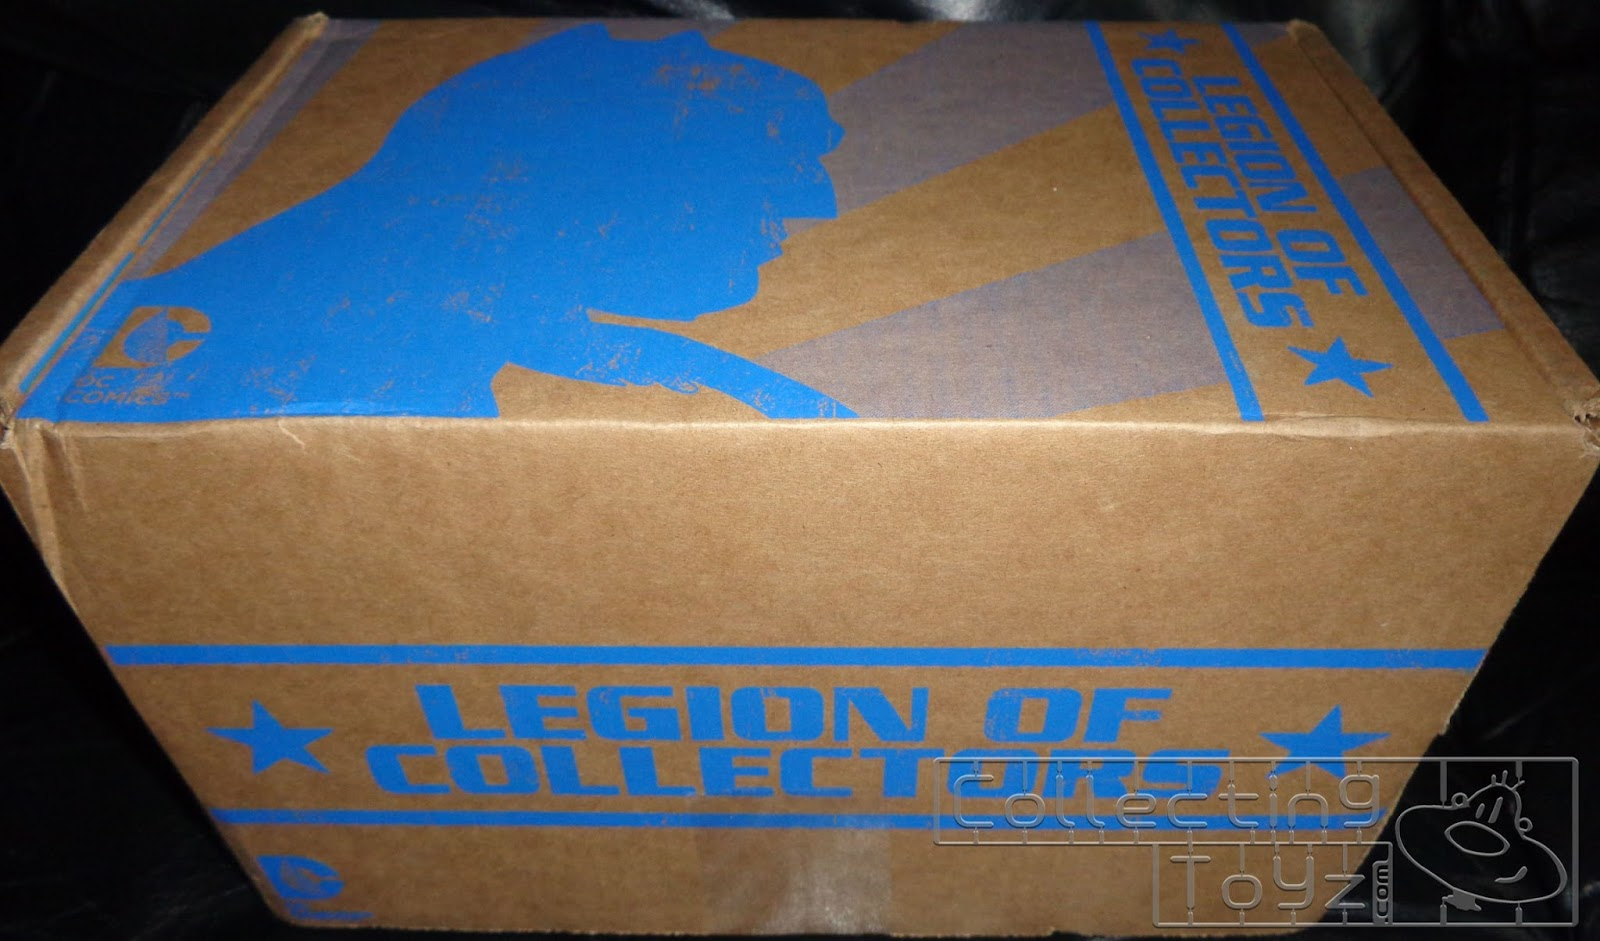 Collecting Toyz March 2016 Tas Jansport Super Sneak Regal Blue Neon Yellow By Now Everyone Should Have Received Their Legion Of Collectors Batman V Superman Box Is The Newest Subscription Line With This